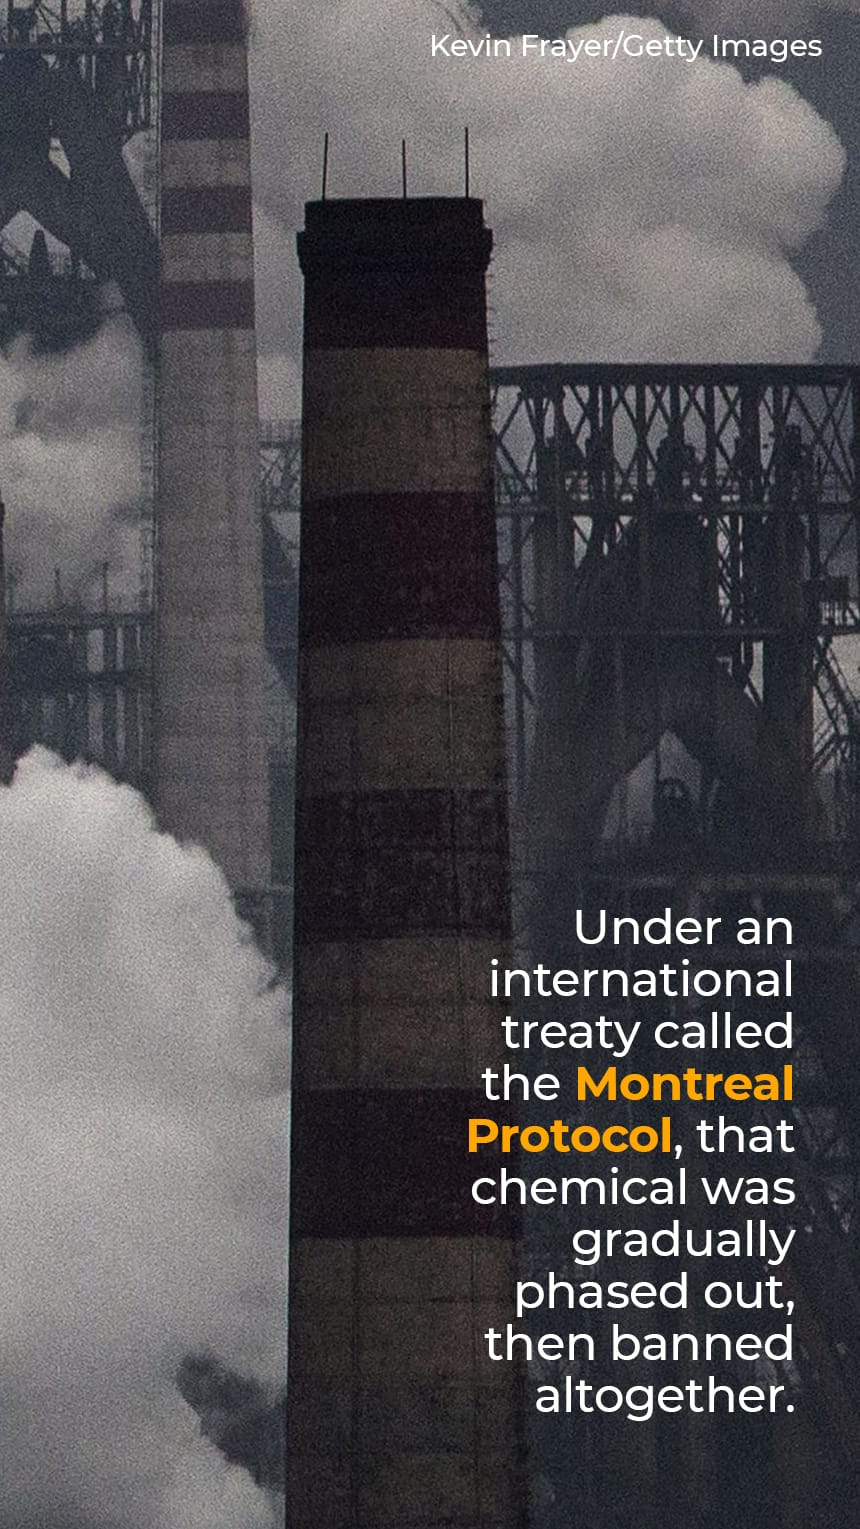 TEXT: Under an international treaty called the Montreal Protocol, that chemical was gradually phased out, then banned altogether.  IMAGE: Smoke stacks polluting the air